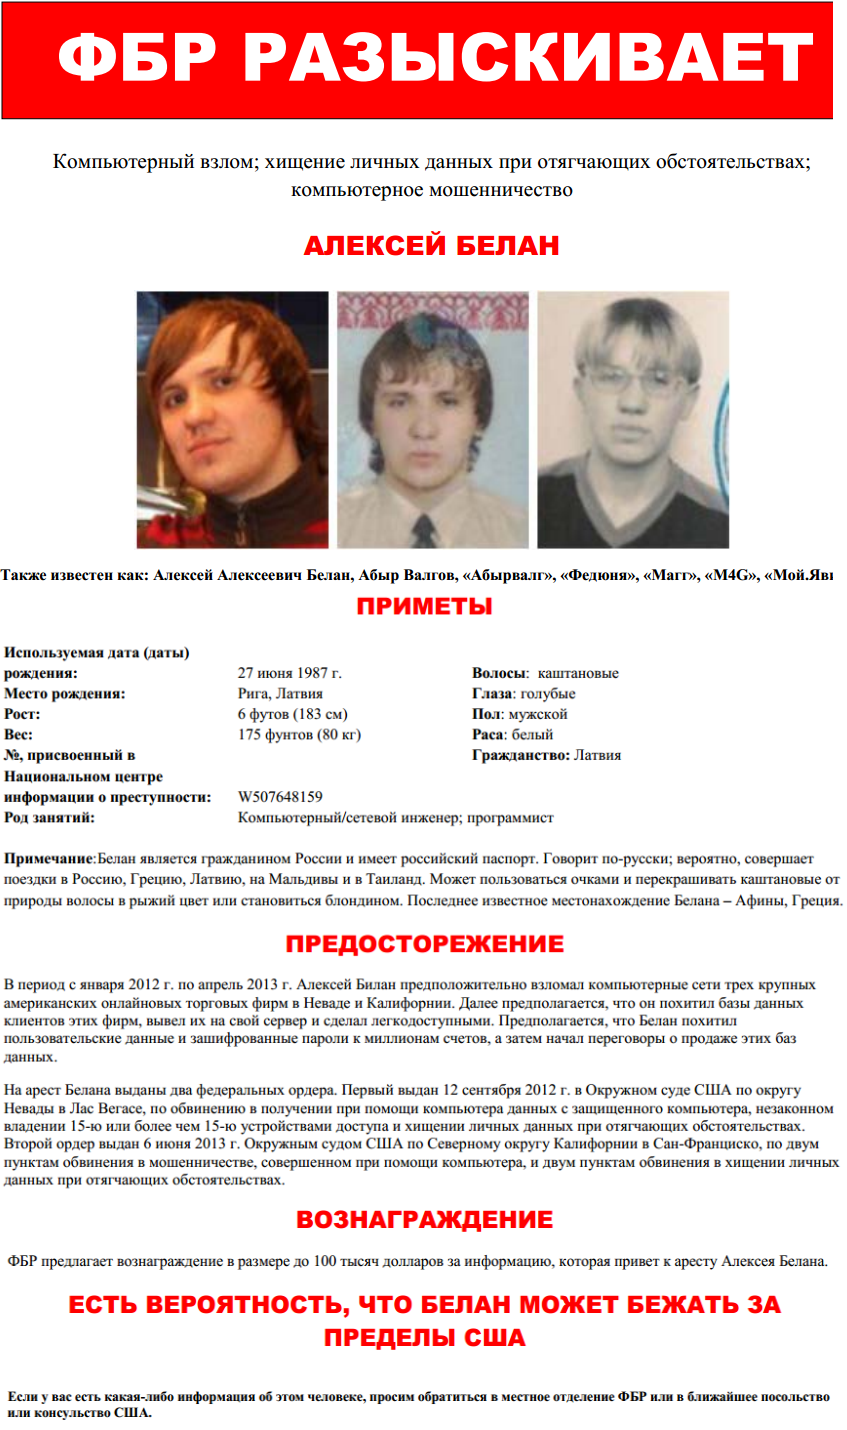 Wanted Russian Hacker русские, фбр, хакеры